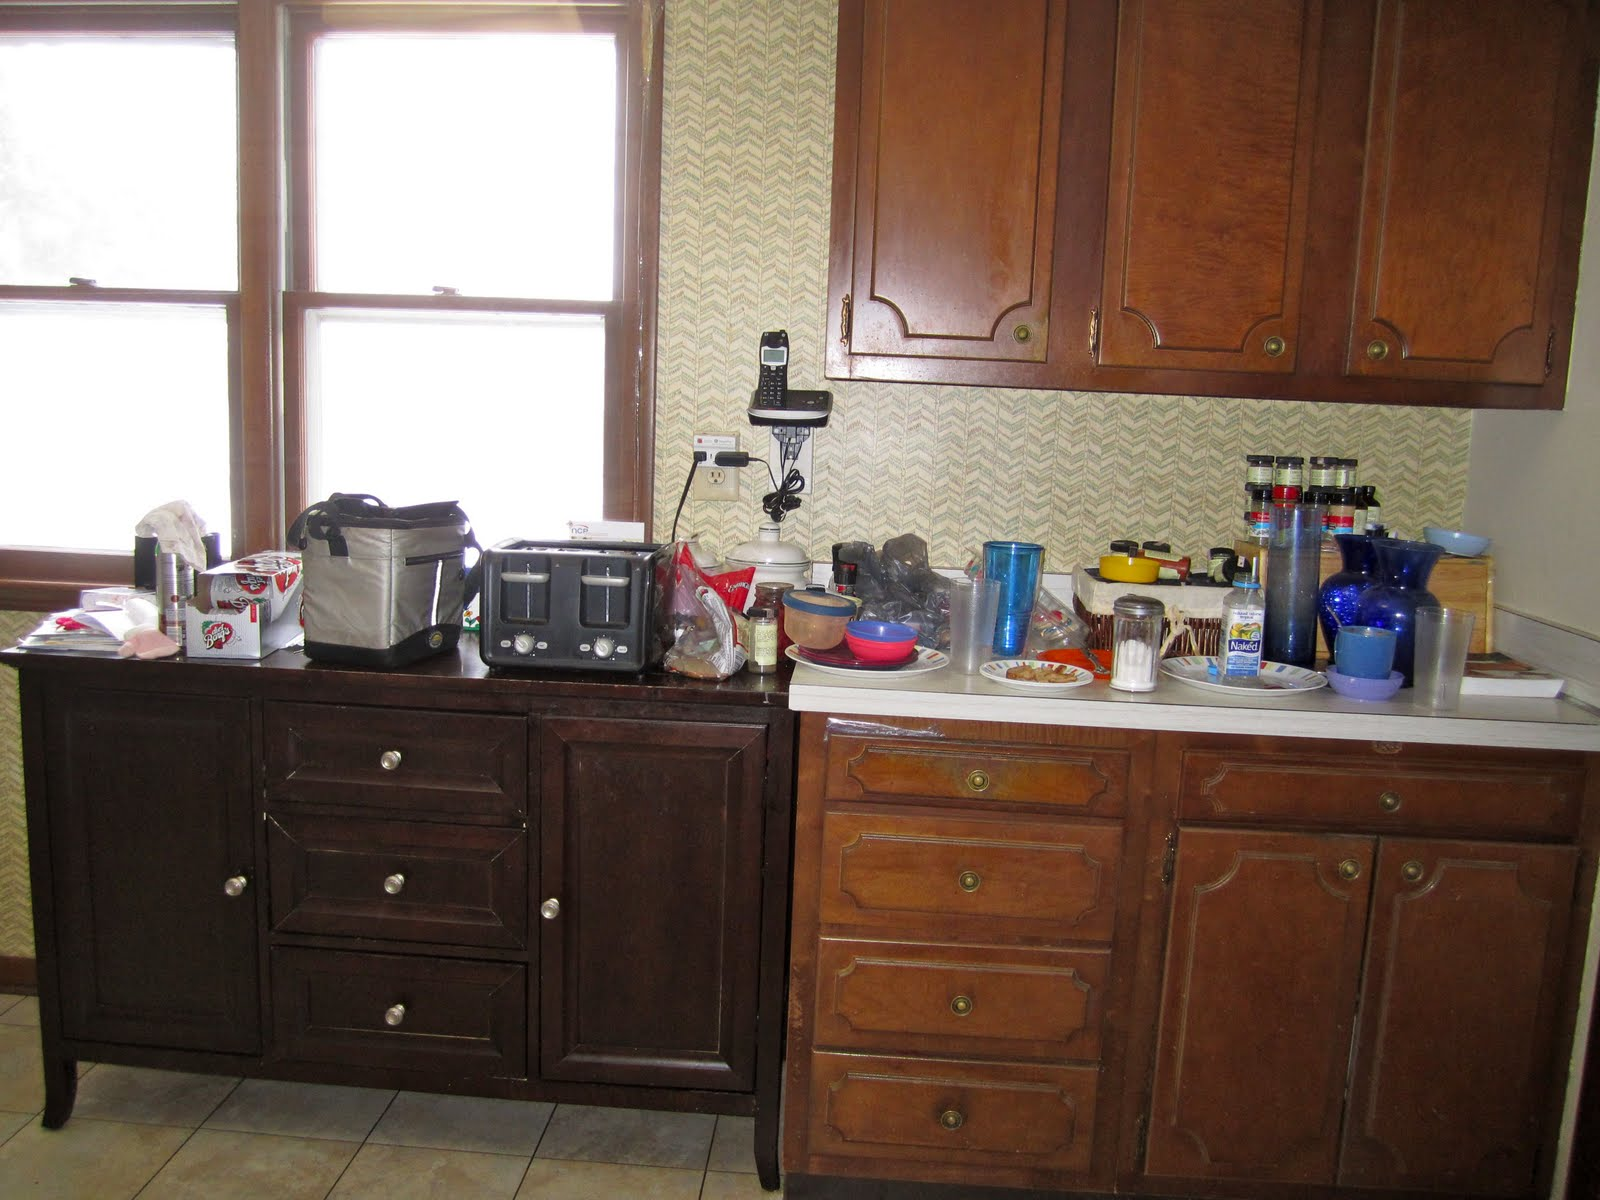 My Journey To Super Mom Organized Home Challenge Week 1 Kitchen Countertops